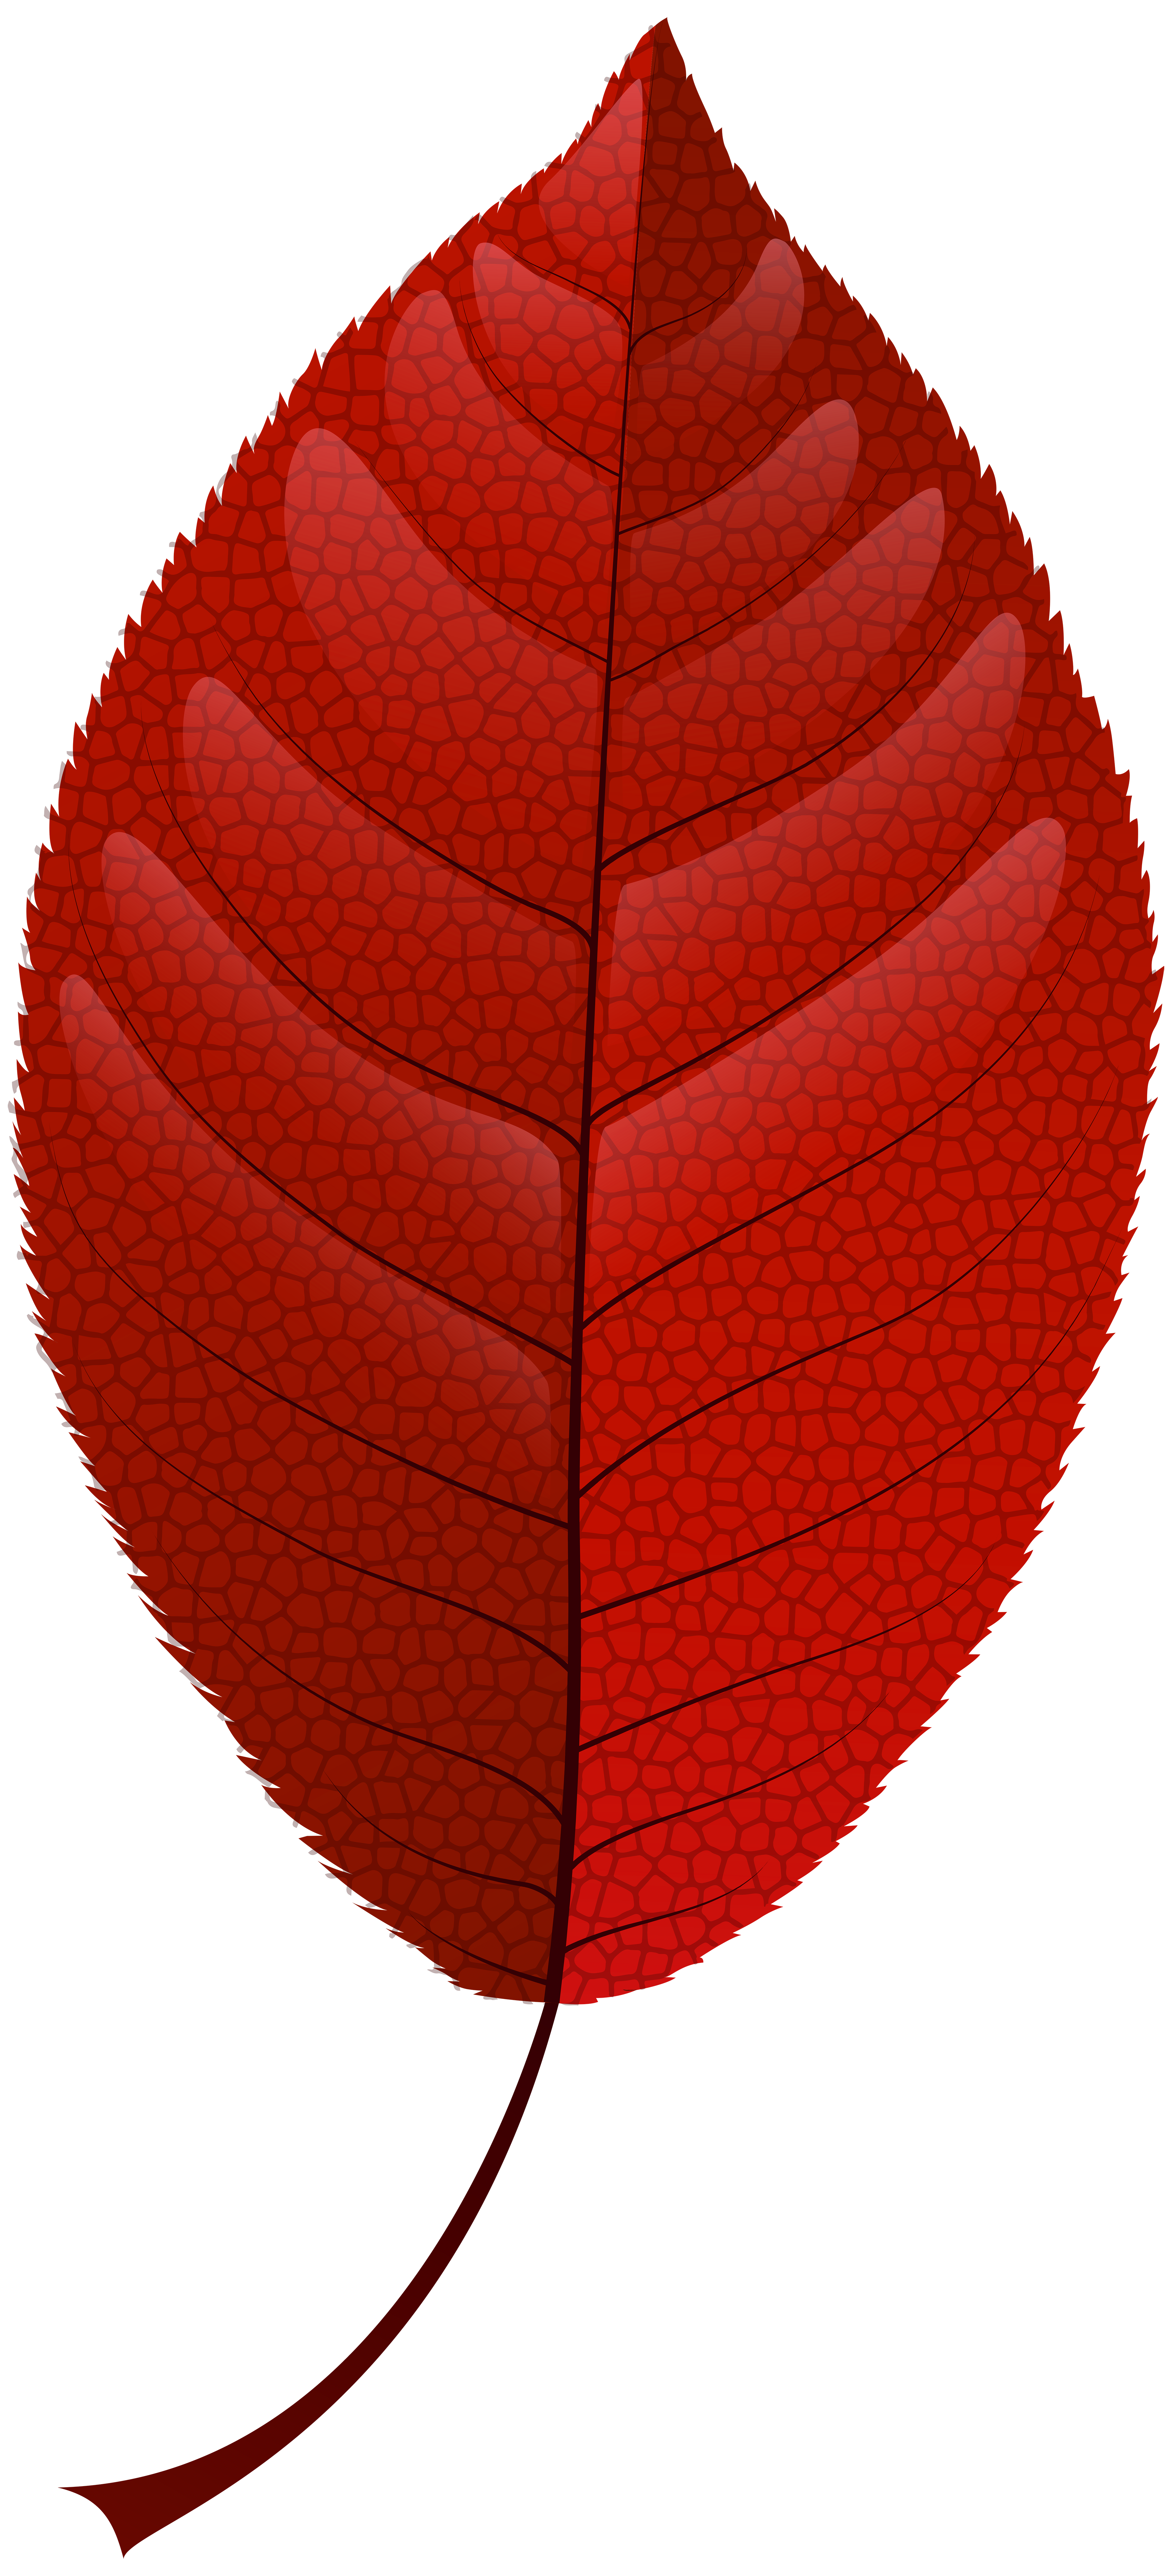 Fall leaves png vector. Clipart cake autumn